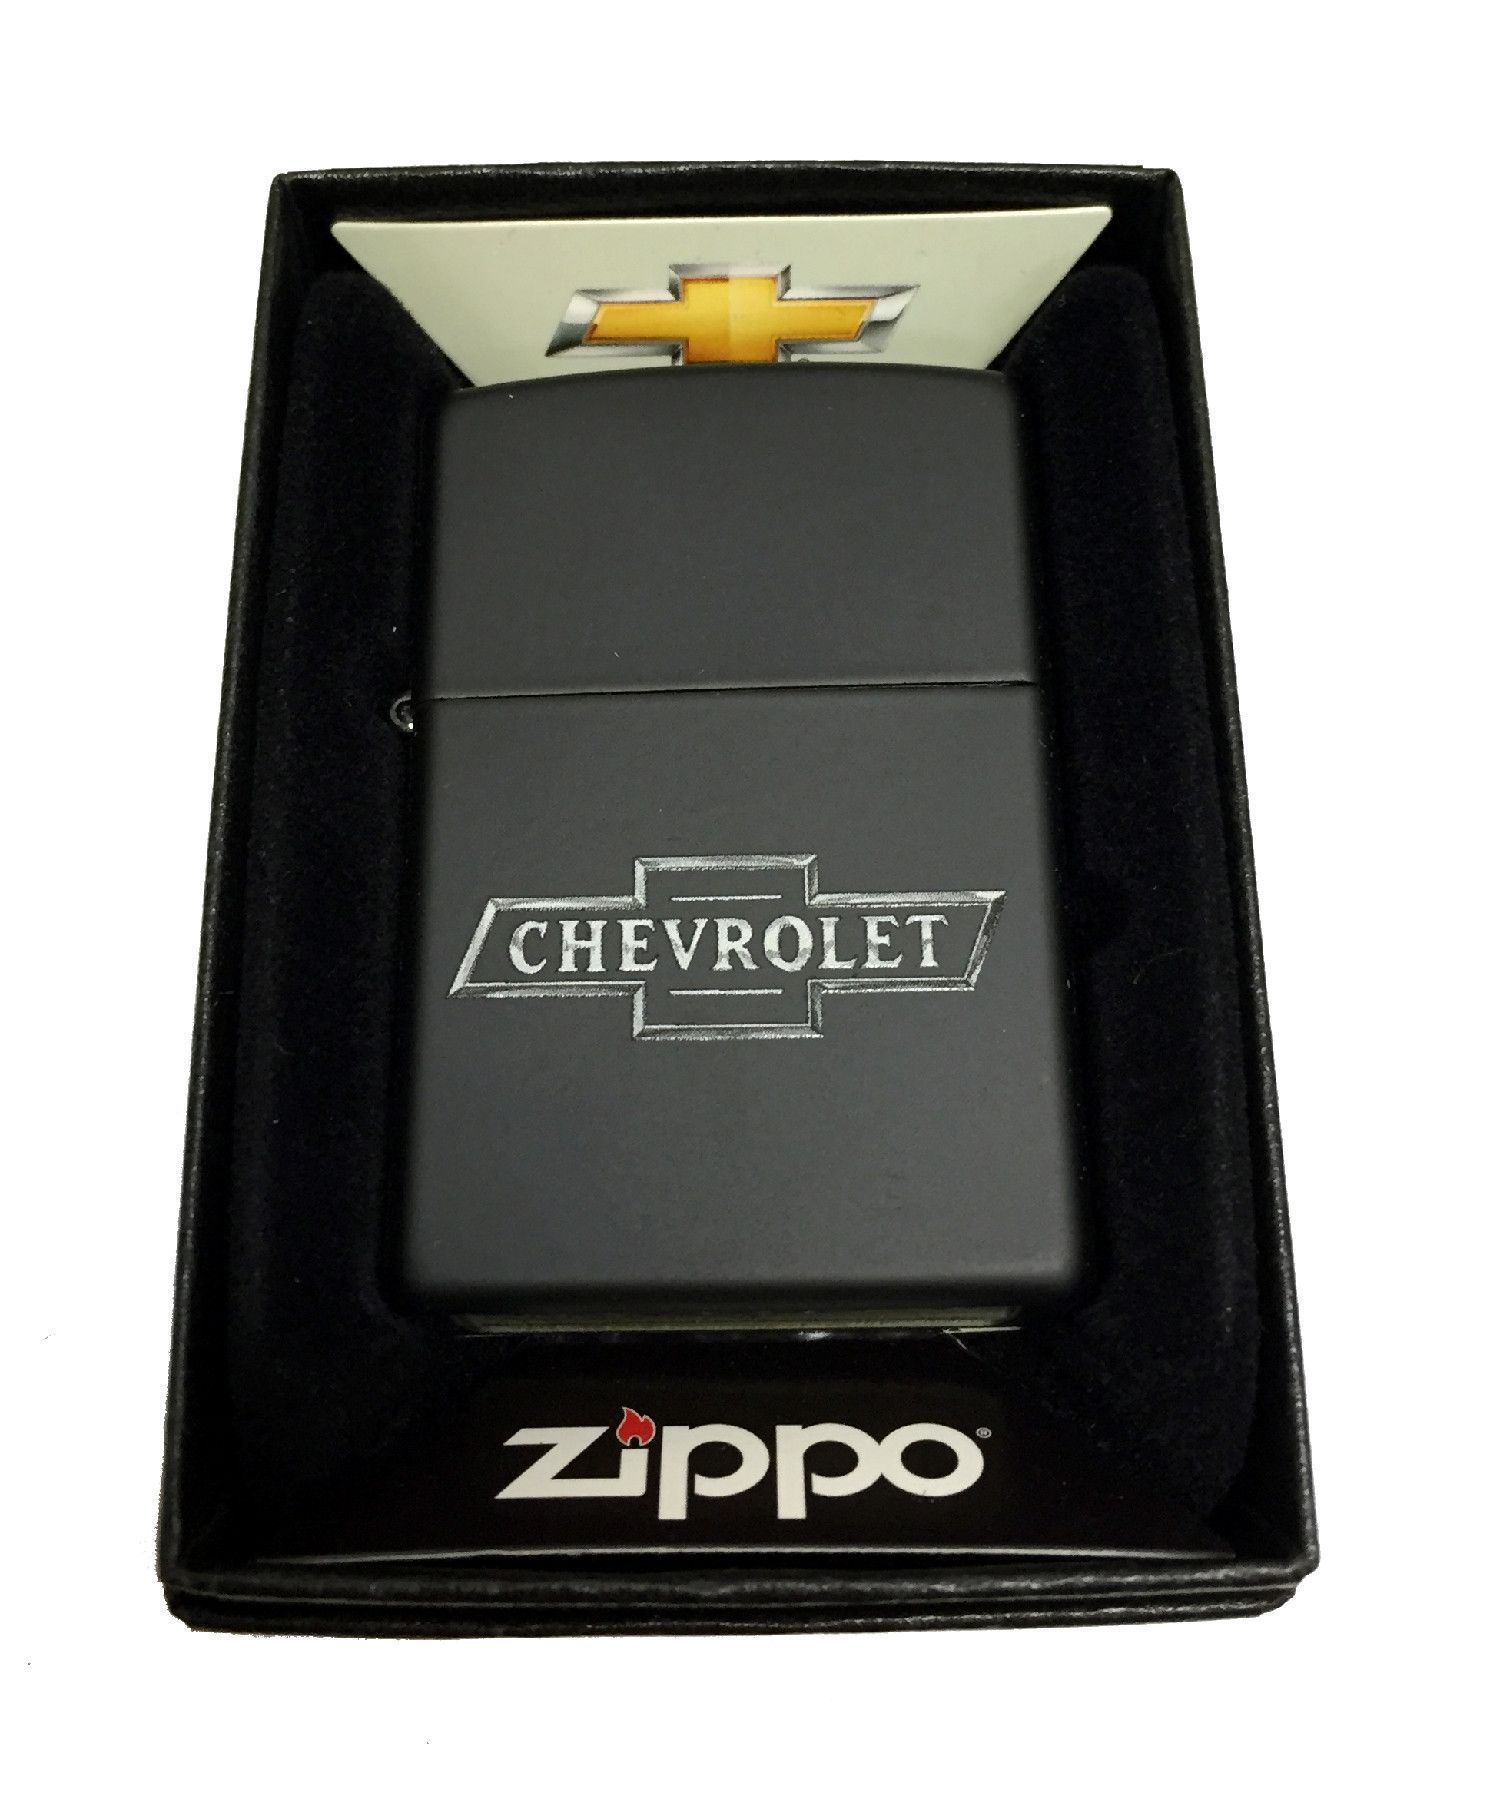 Zippo Custom Lighter Chevy Chevrolet Bowtie Logo Regular Black Matte 218ci016223 With Images Custom Lighters Chevy Chevrolet Chevrolet Bowtie